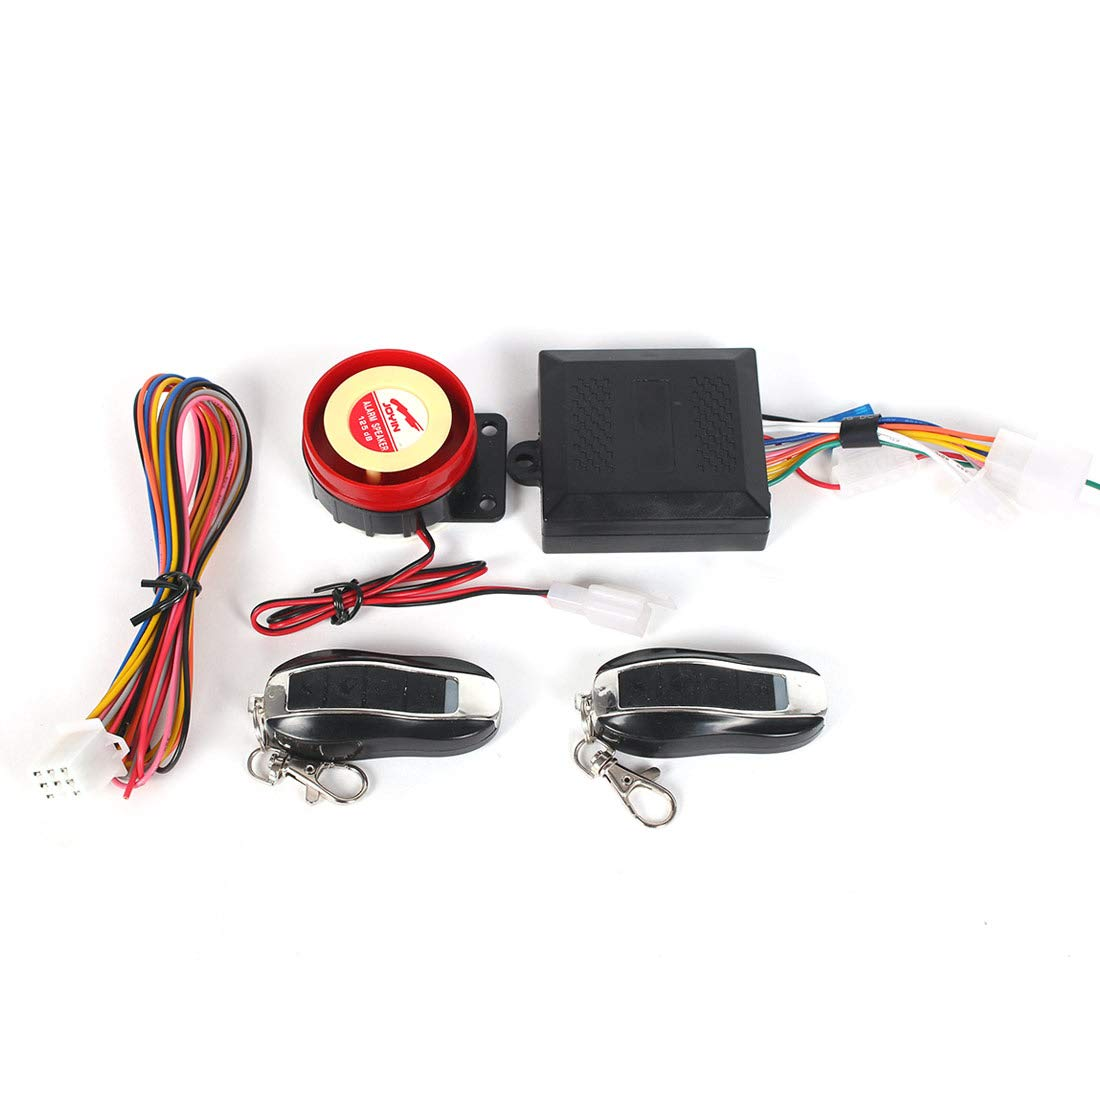 Bompa Universal Fit Motorcycle Anti-Theft Alarm Security System Remote Control Engine Start Kit by Bompa